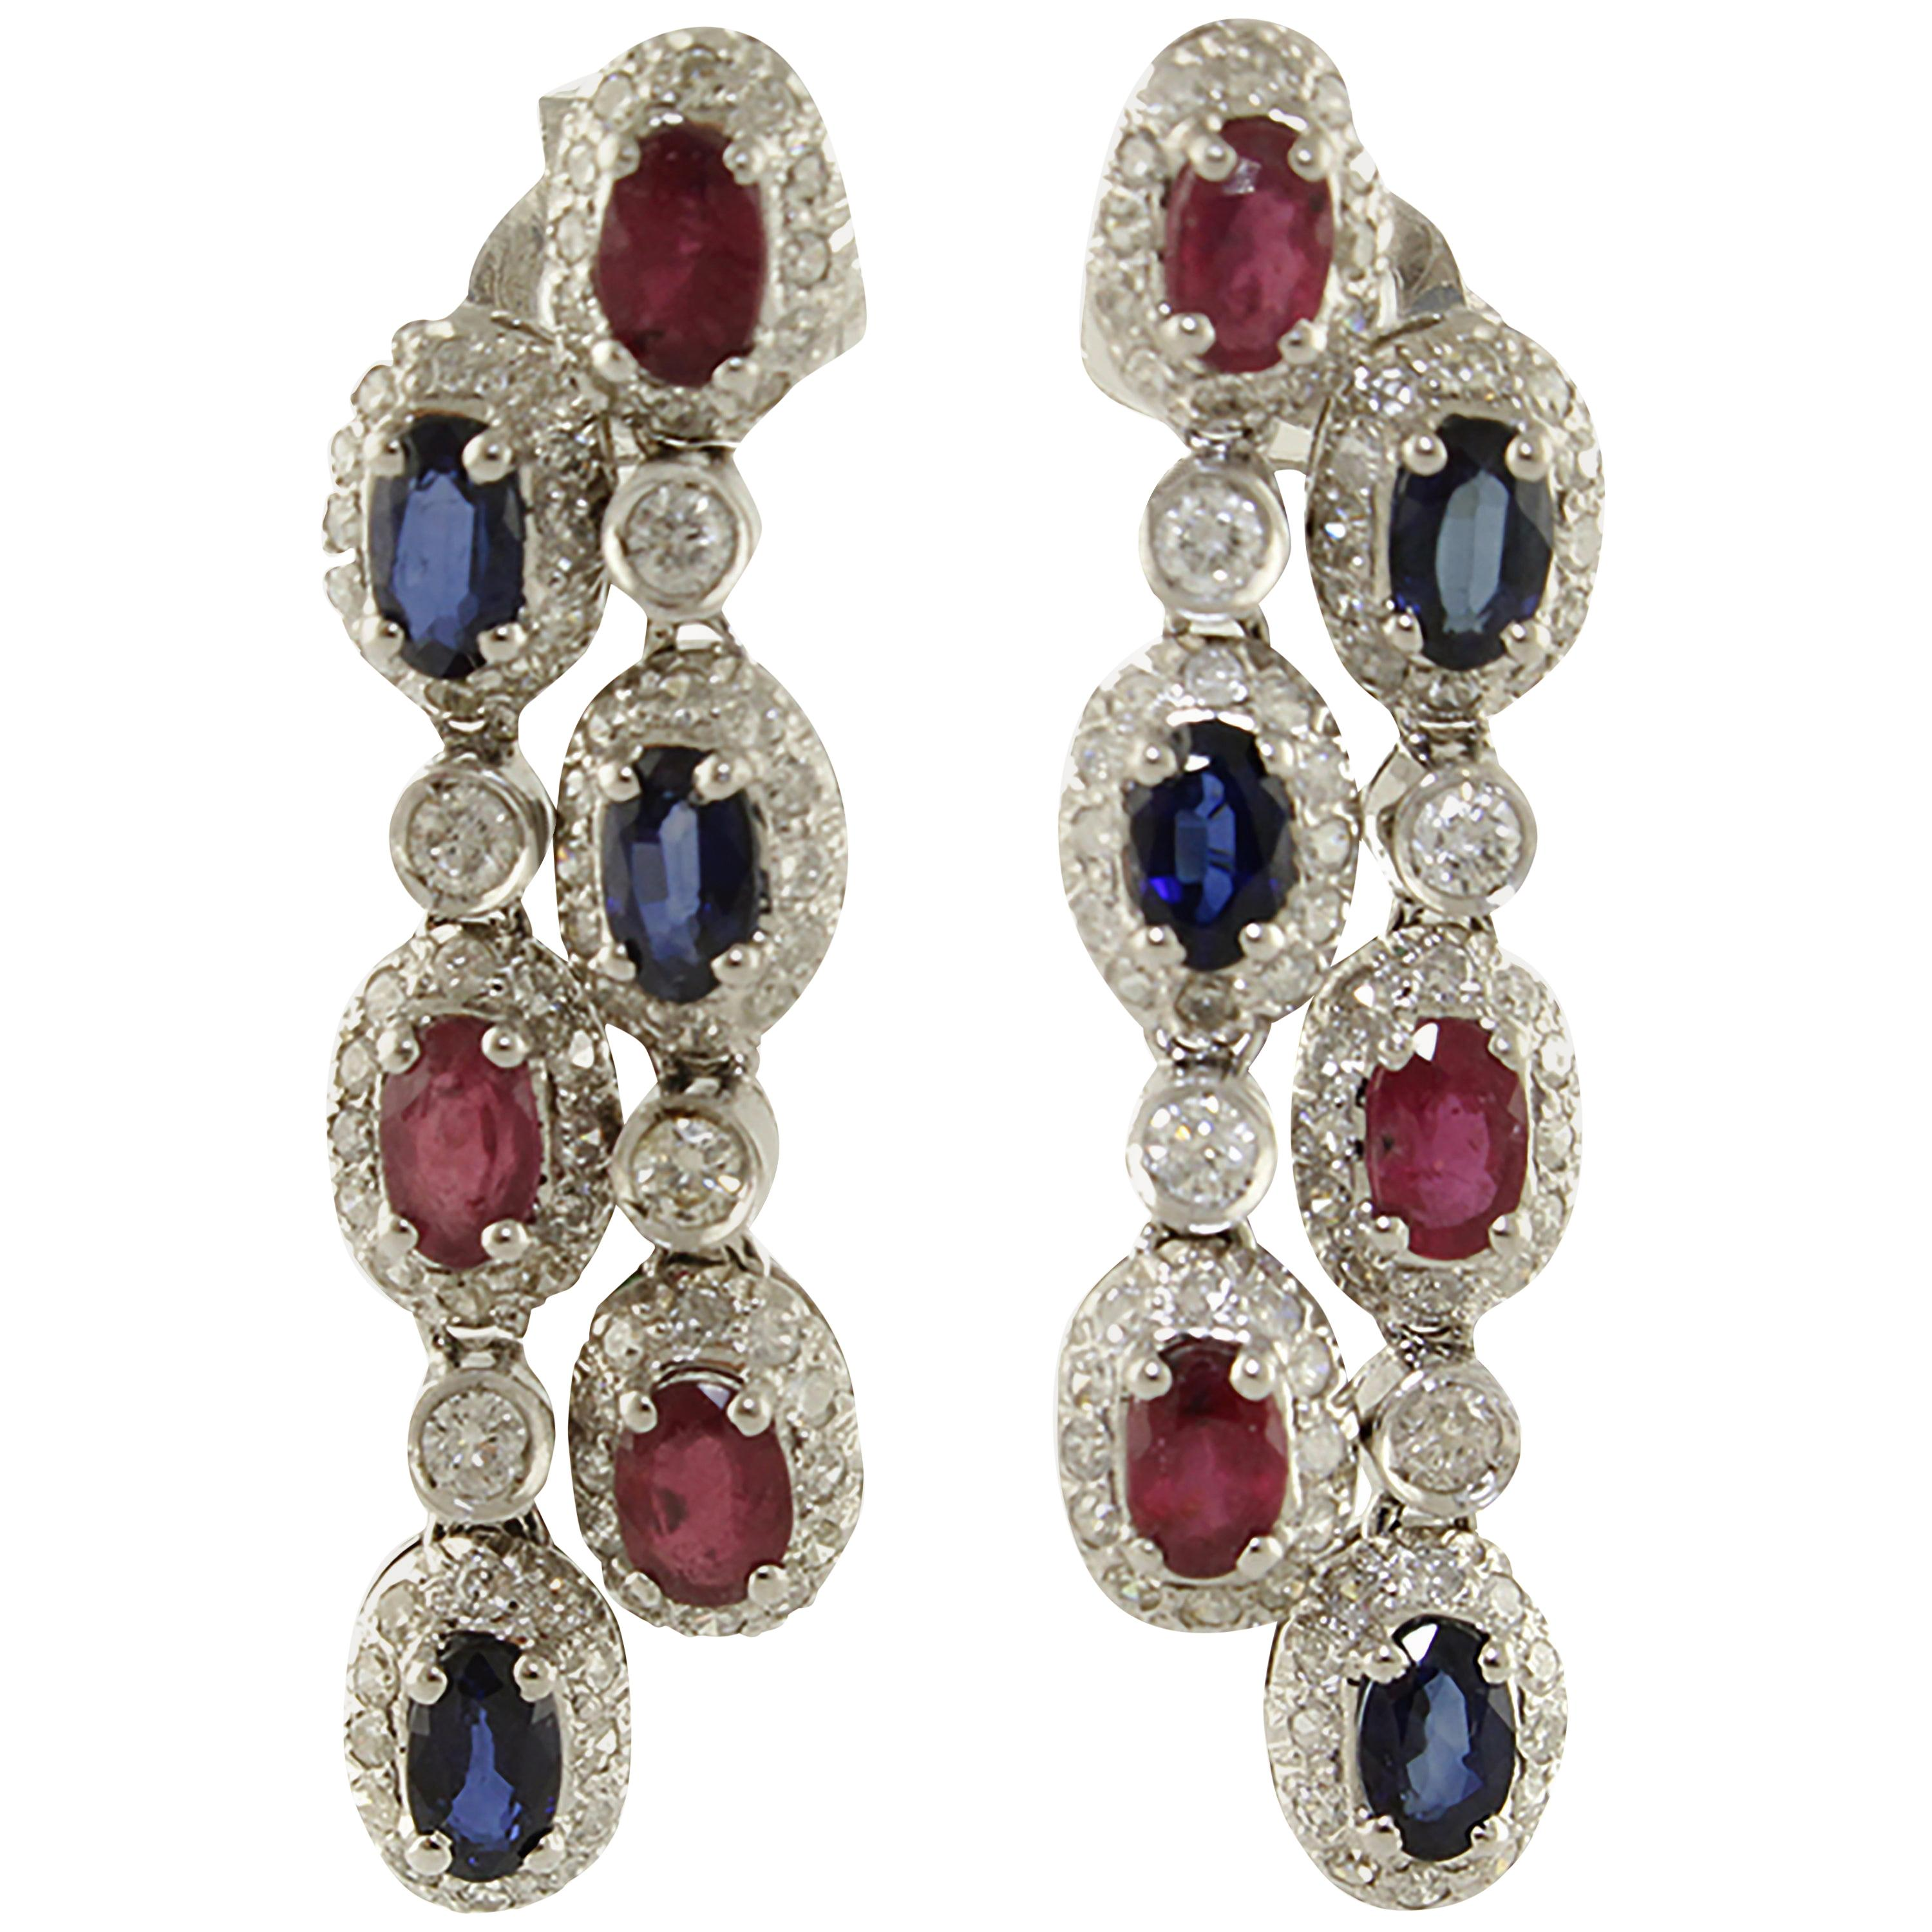 Diamonds Sapphires Rubies White Gold Dangling Earrings